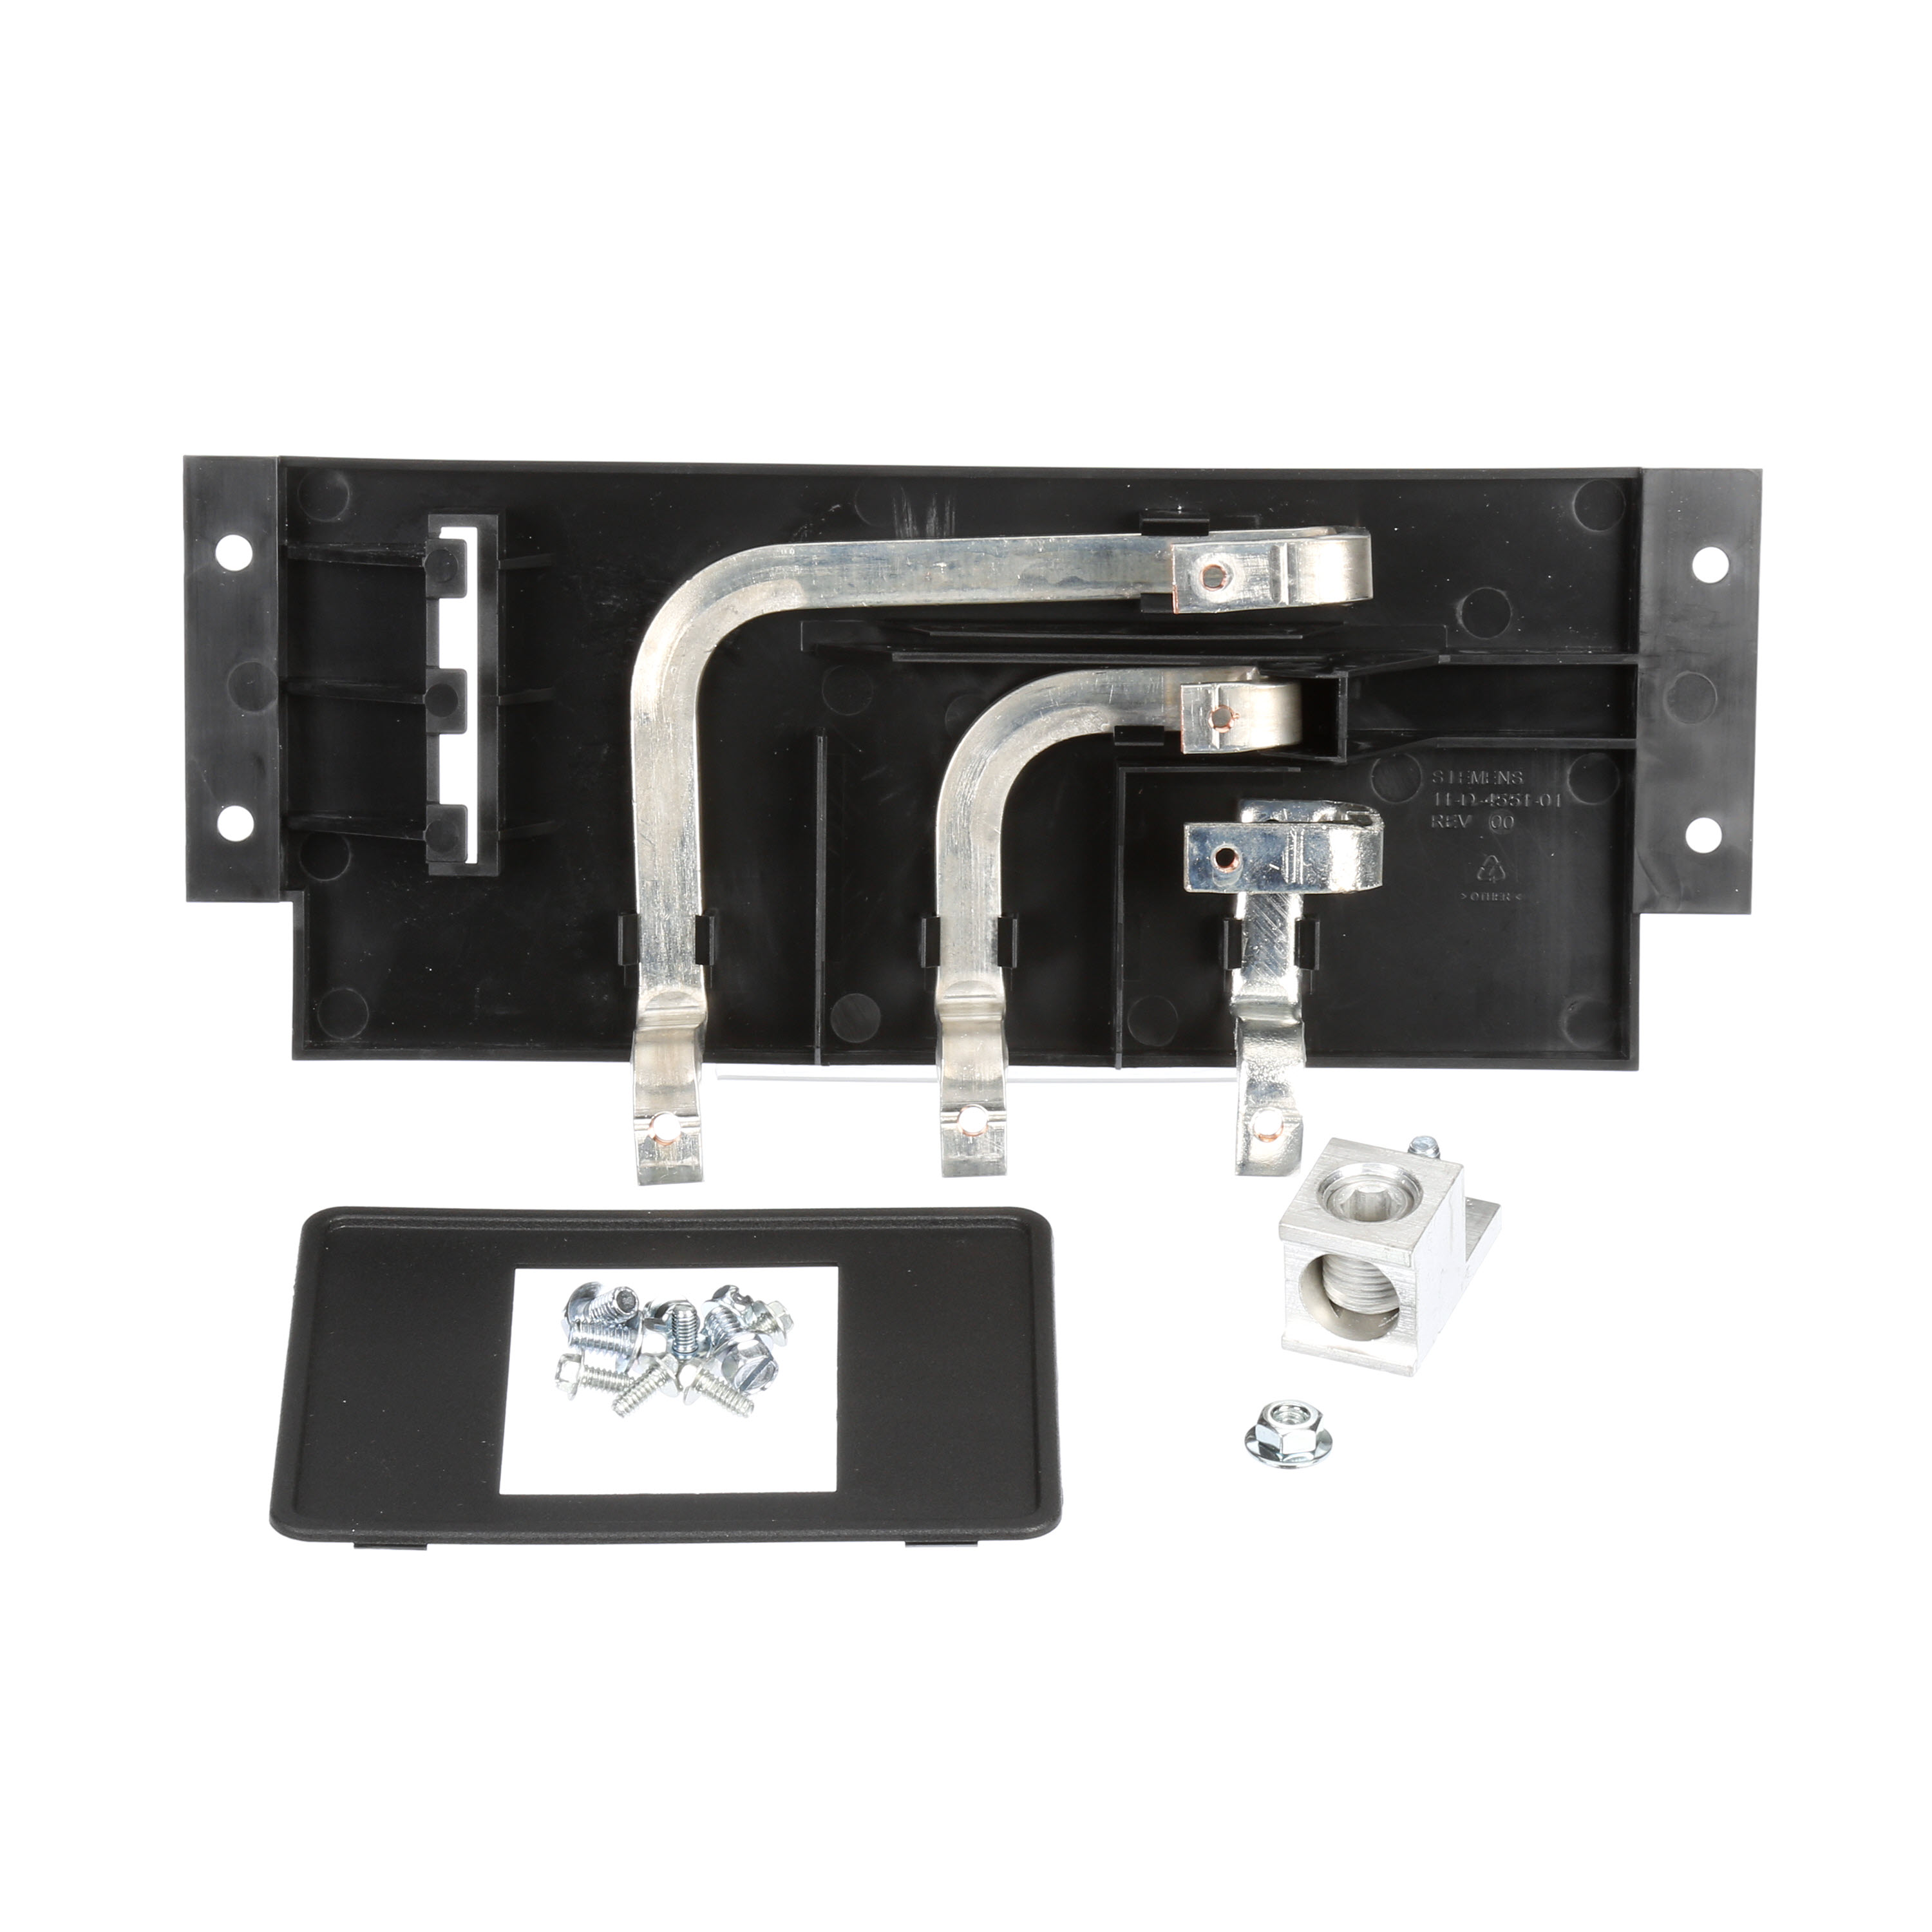 Siemens,MBKED3A,Breaker Mounting Kit, 3-Phase, 125A